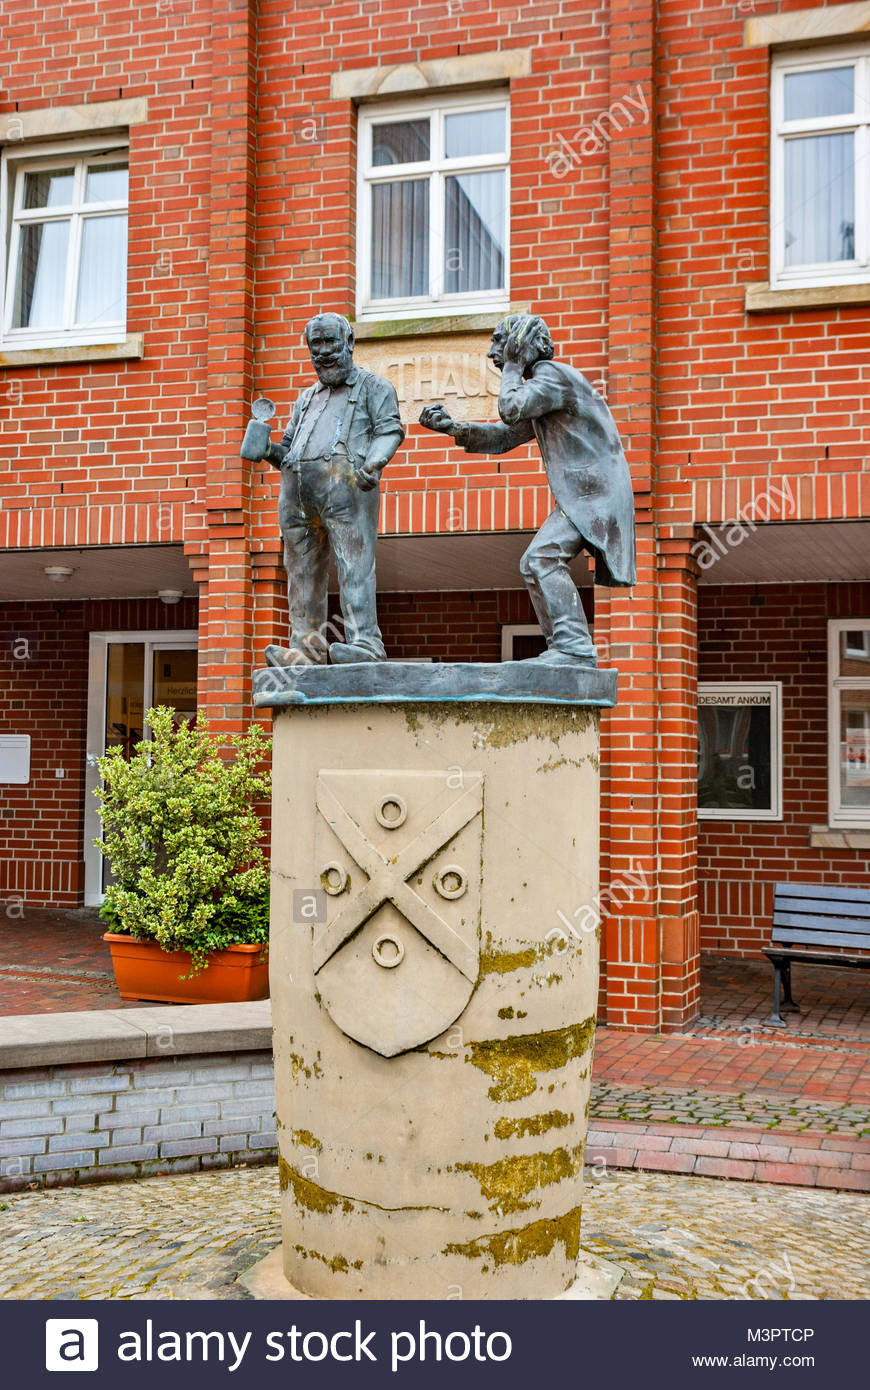 Statue in front of the Rathaus — city hall — in Ankum, Niedersachsen (Lower Saxony), Germany - Stock Image